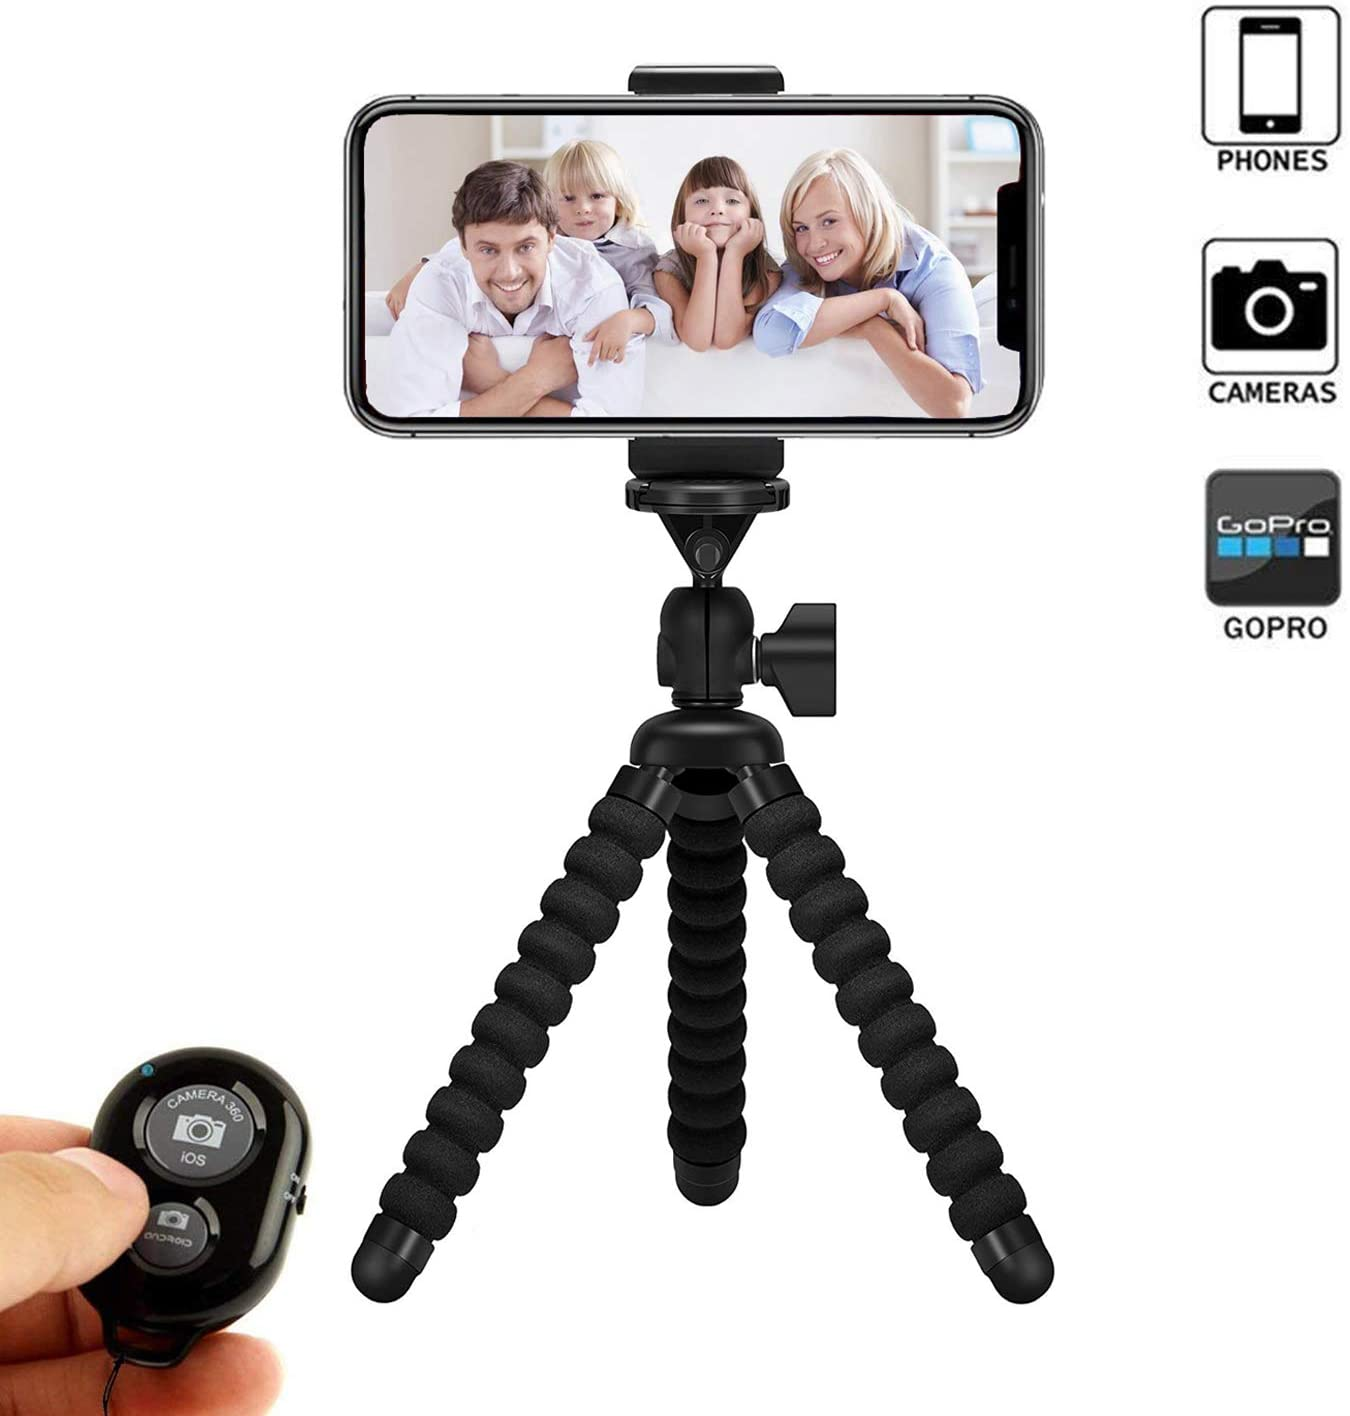 Phone Tripod, VENNKE Flexible Phone/Camera Tripod Mount Stand Holder with Wireless Remote Shutter and Universal Clip, Compatible with iPhone, Android Phone, Camera and GoPro (2020 Upgraded)